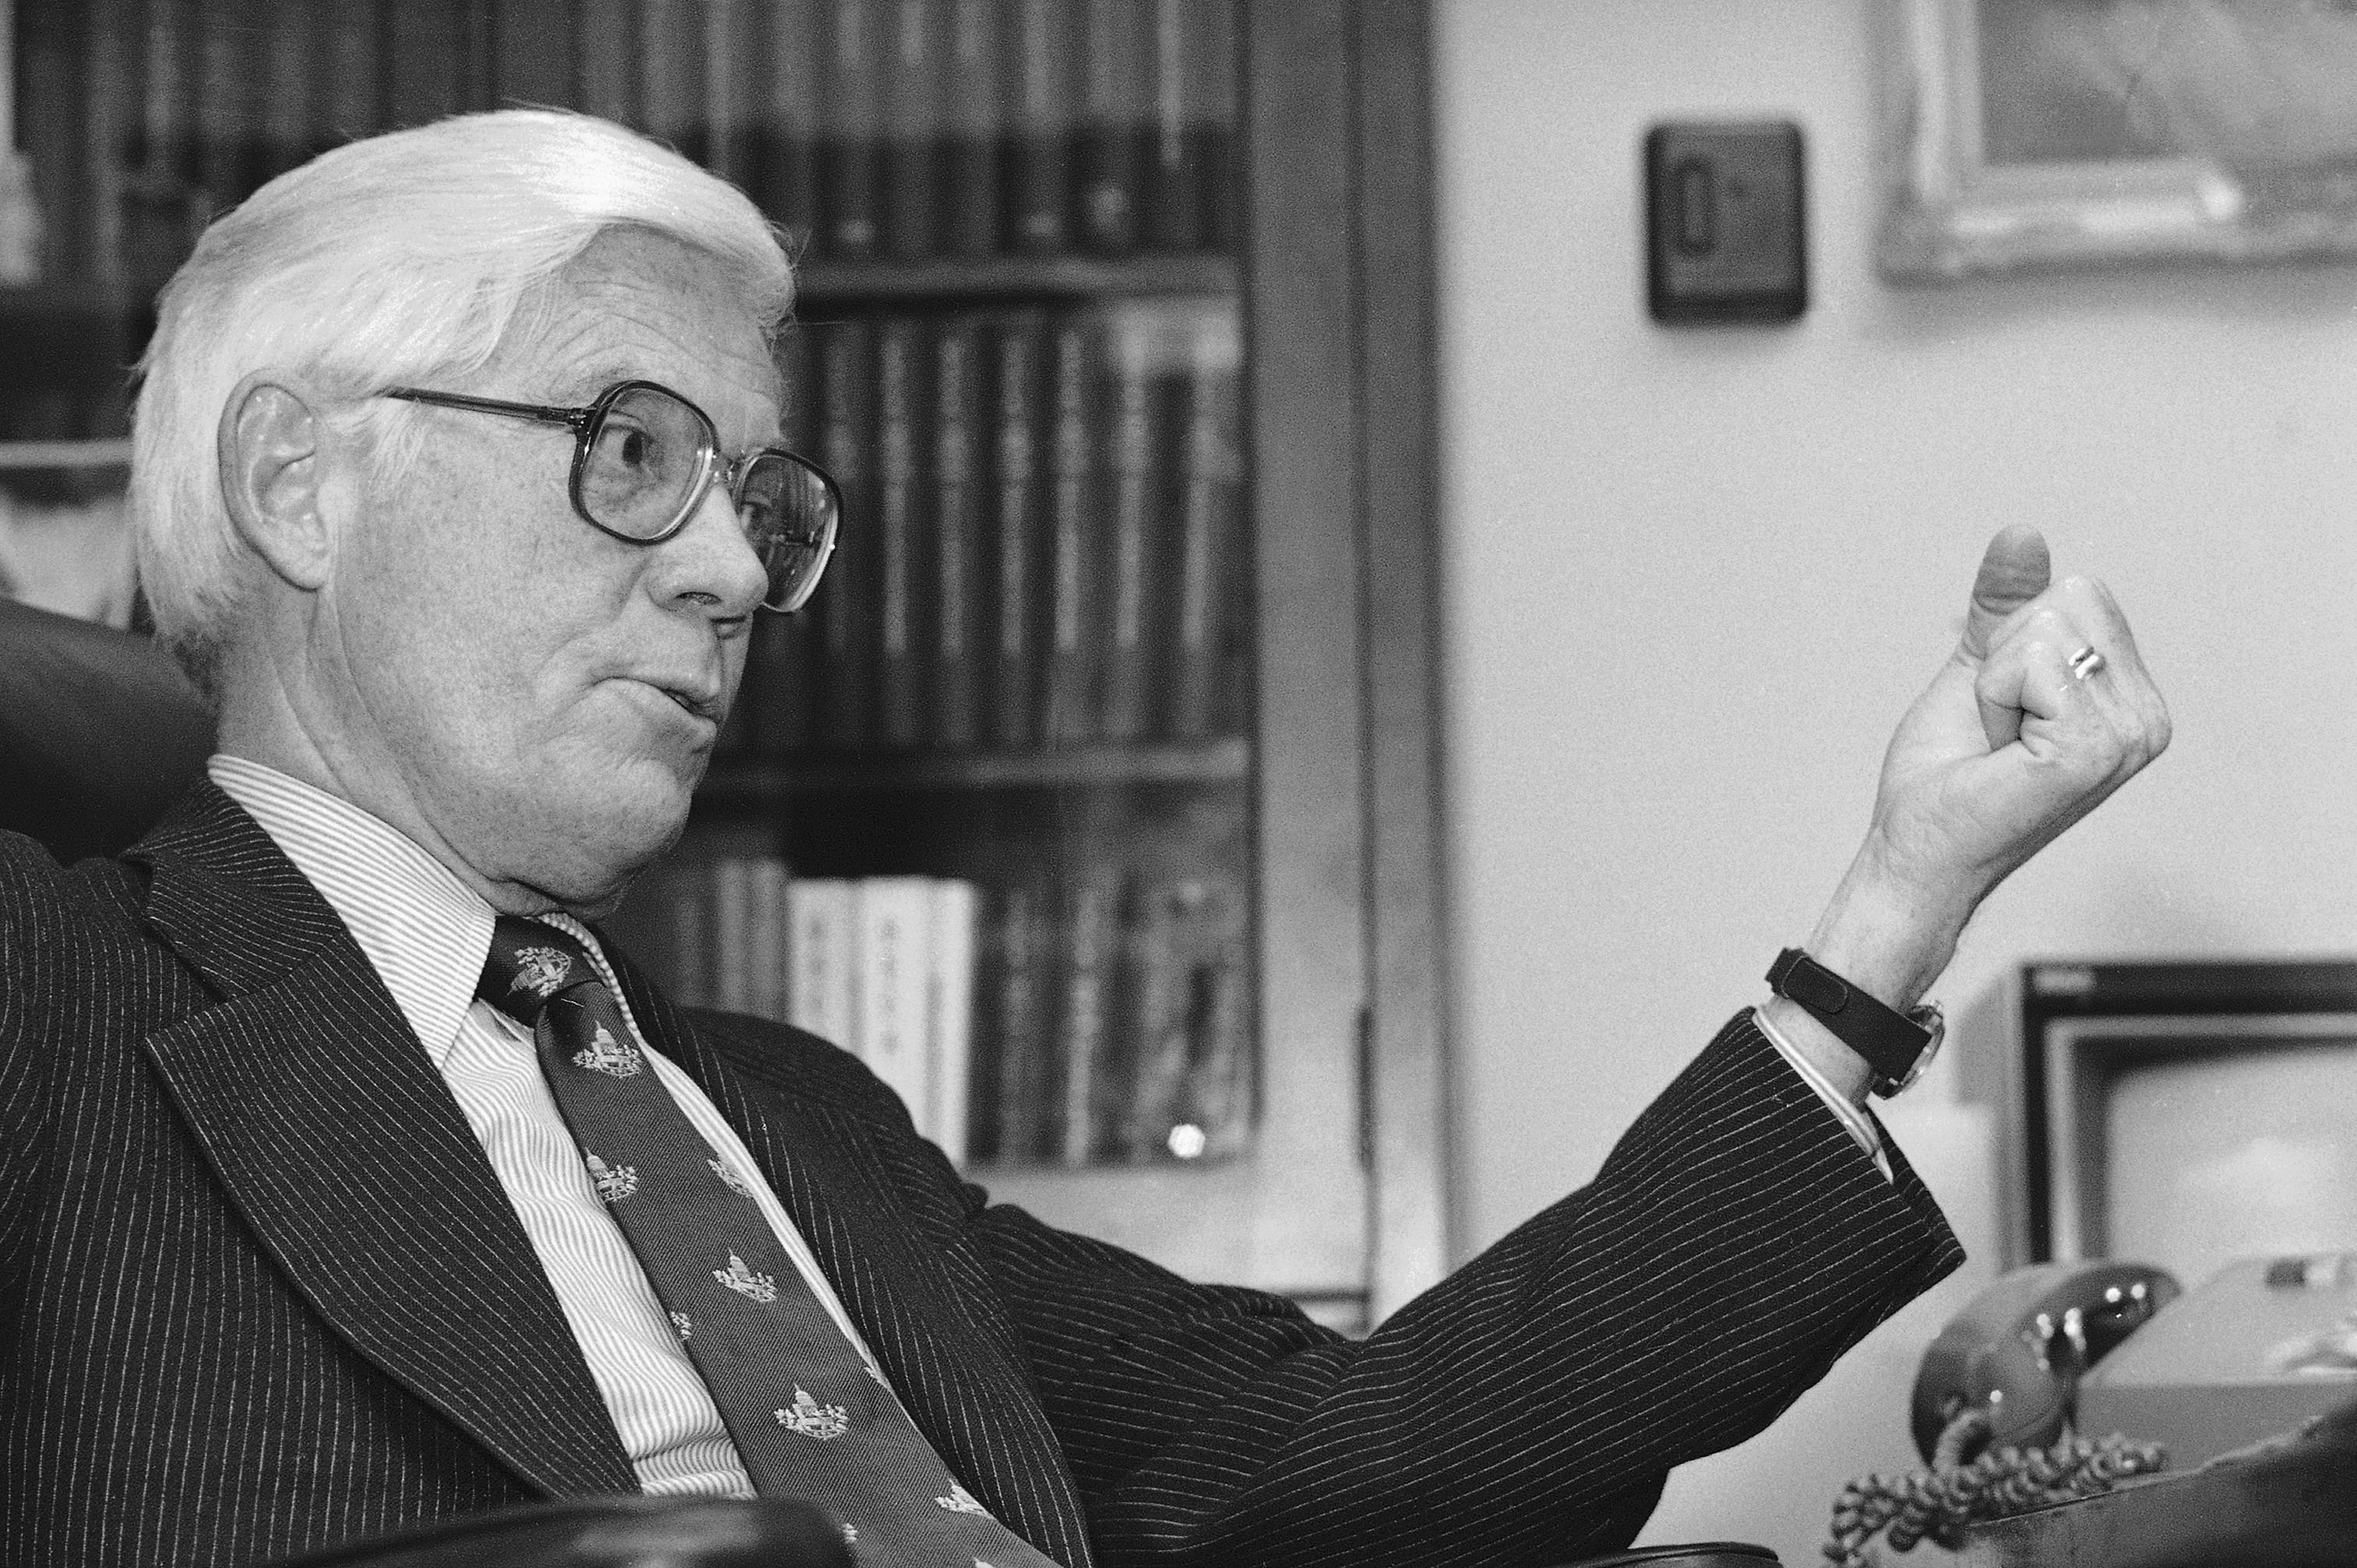 Ex-Illinois congressman and 1980 presidential candidate dead at 95